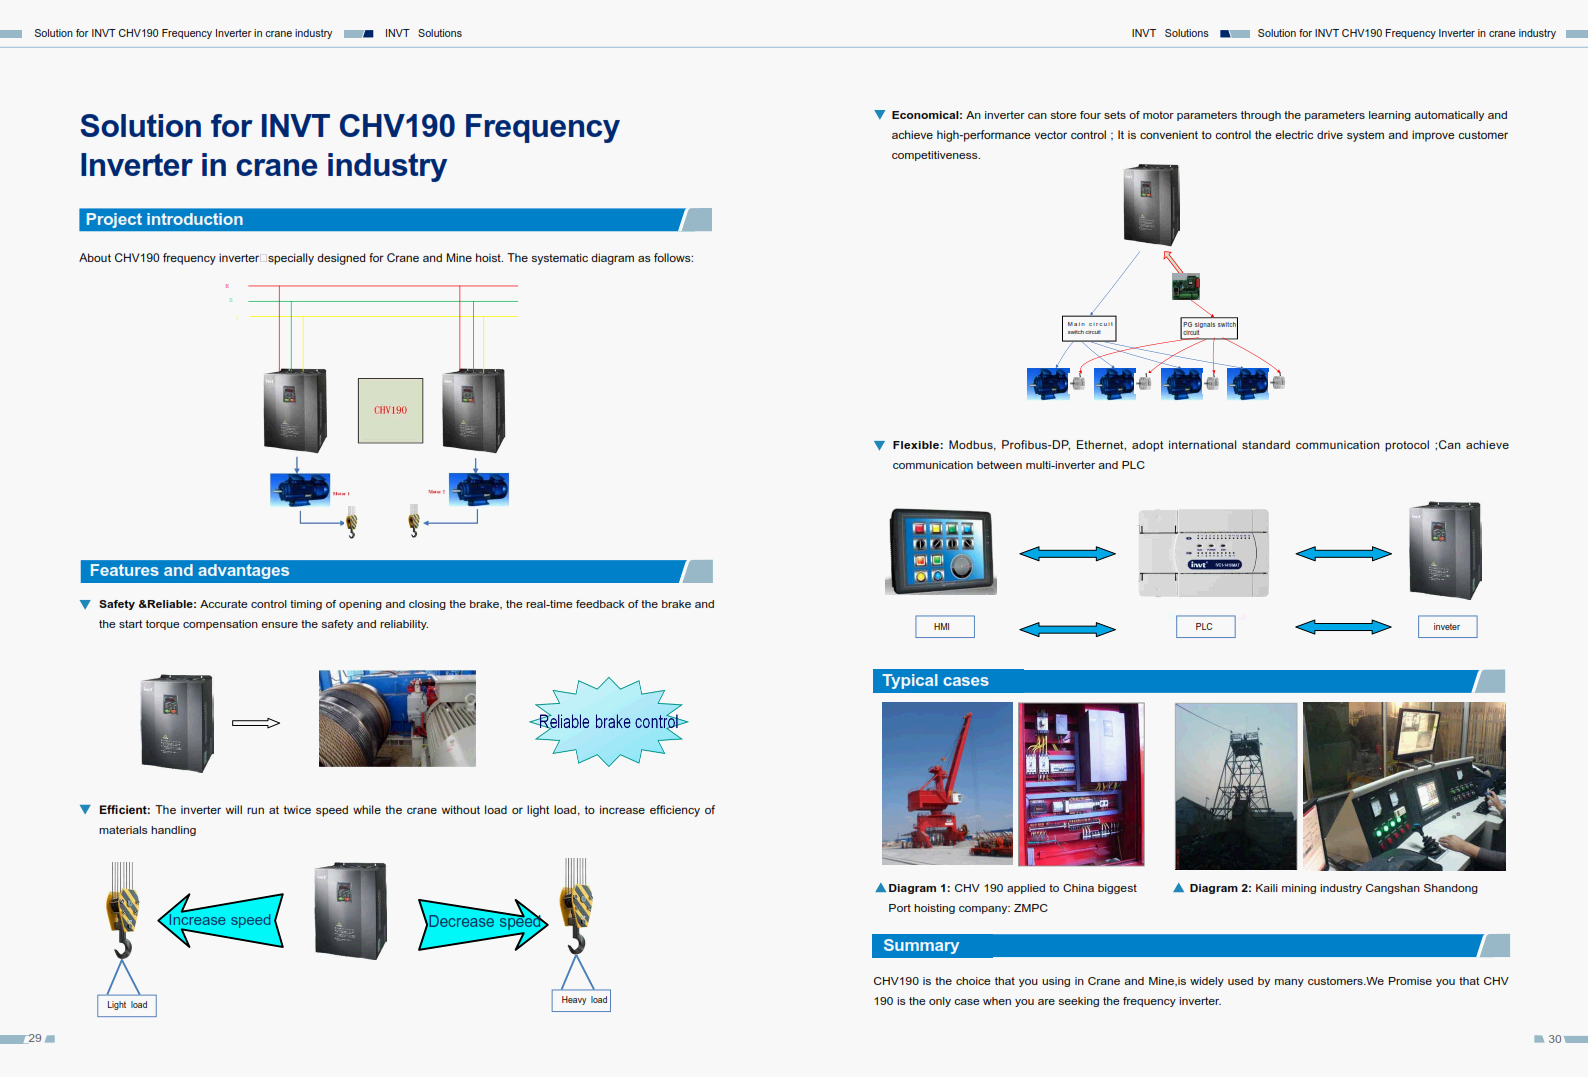 Solution for INVT CHV190 Frequency Inverter in crane industry